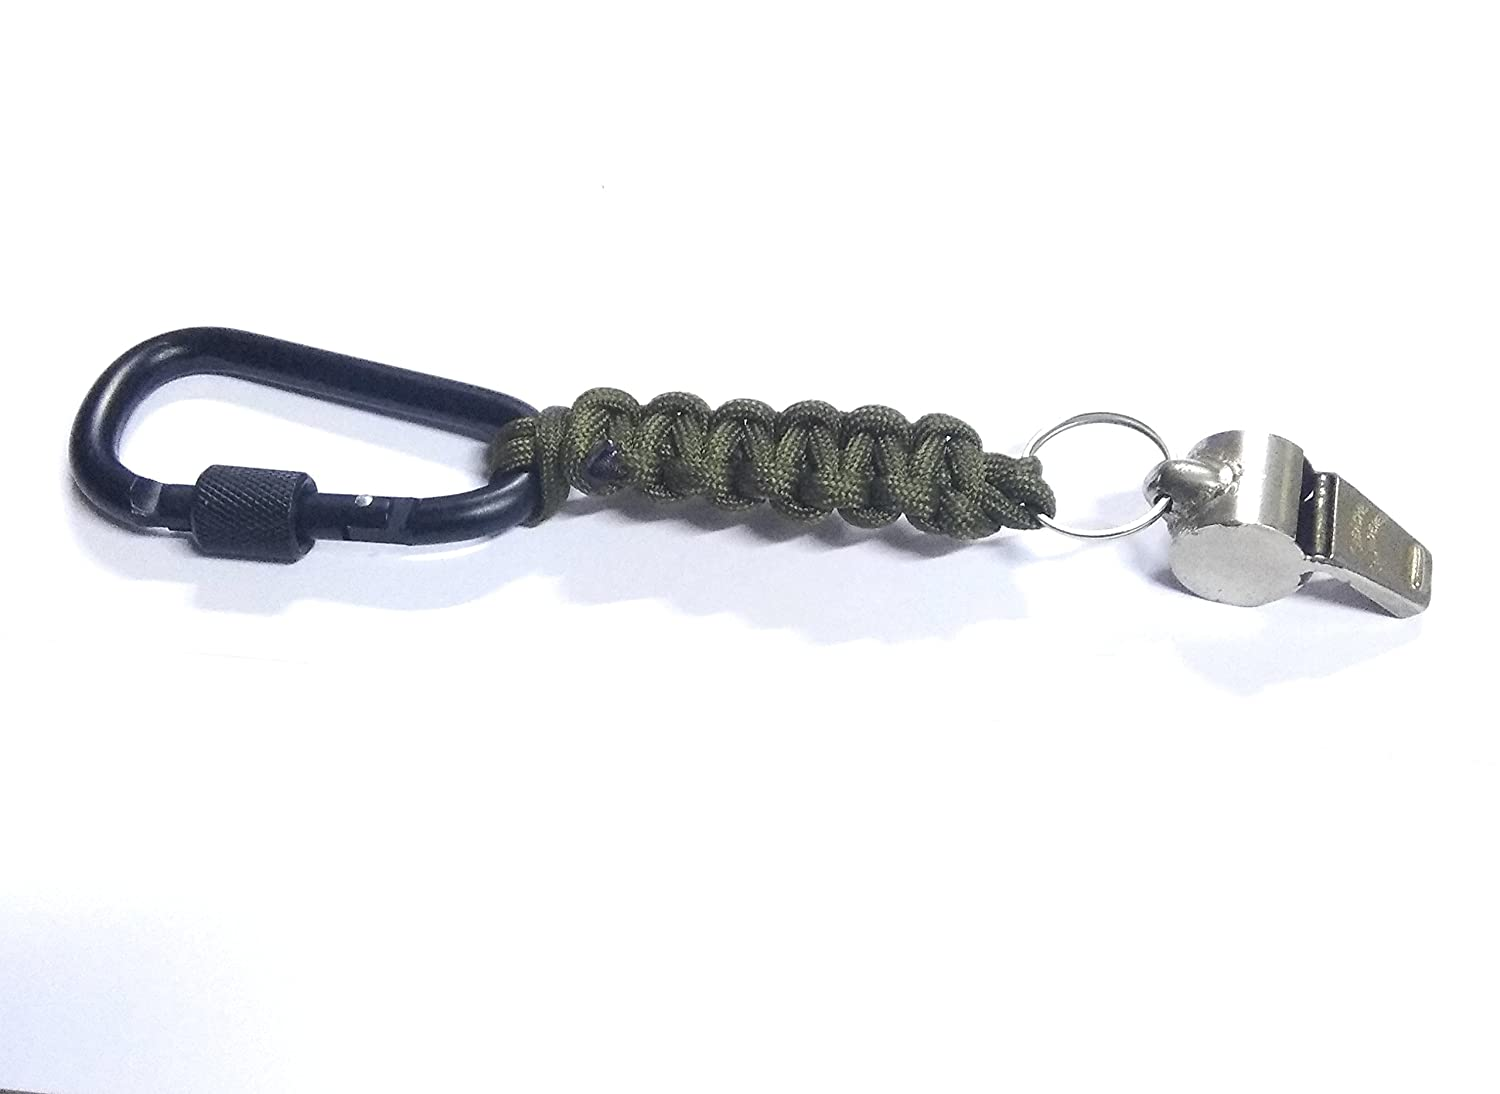 Thunderer Whistle All In One Lanyard For Outdoor Camping Hiking Paracord Add-gear Carabiner Football Add-venture India